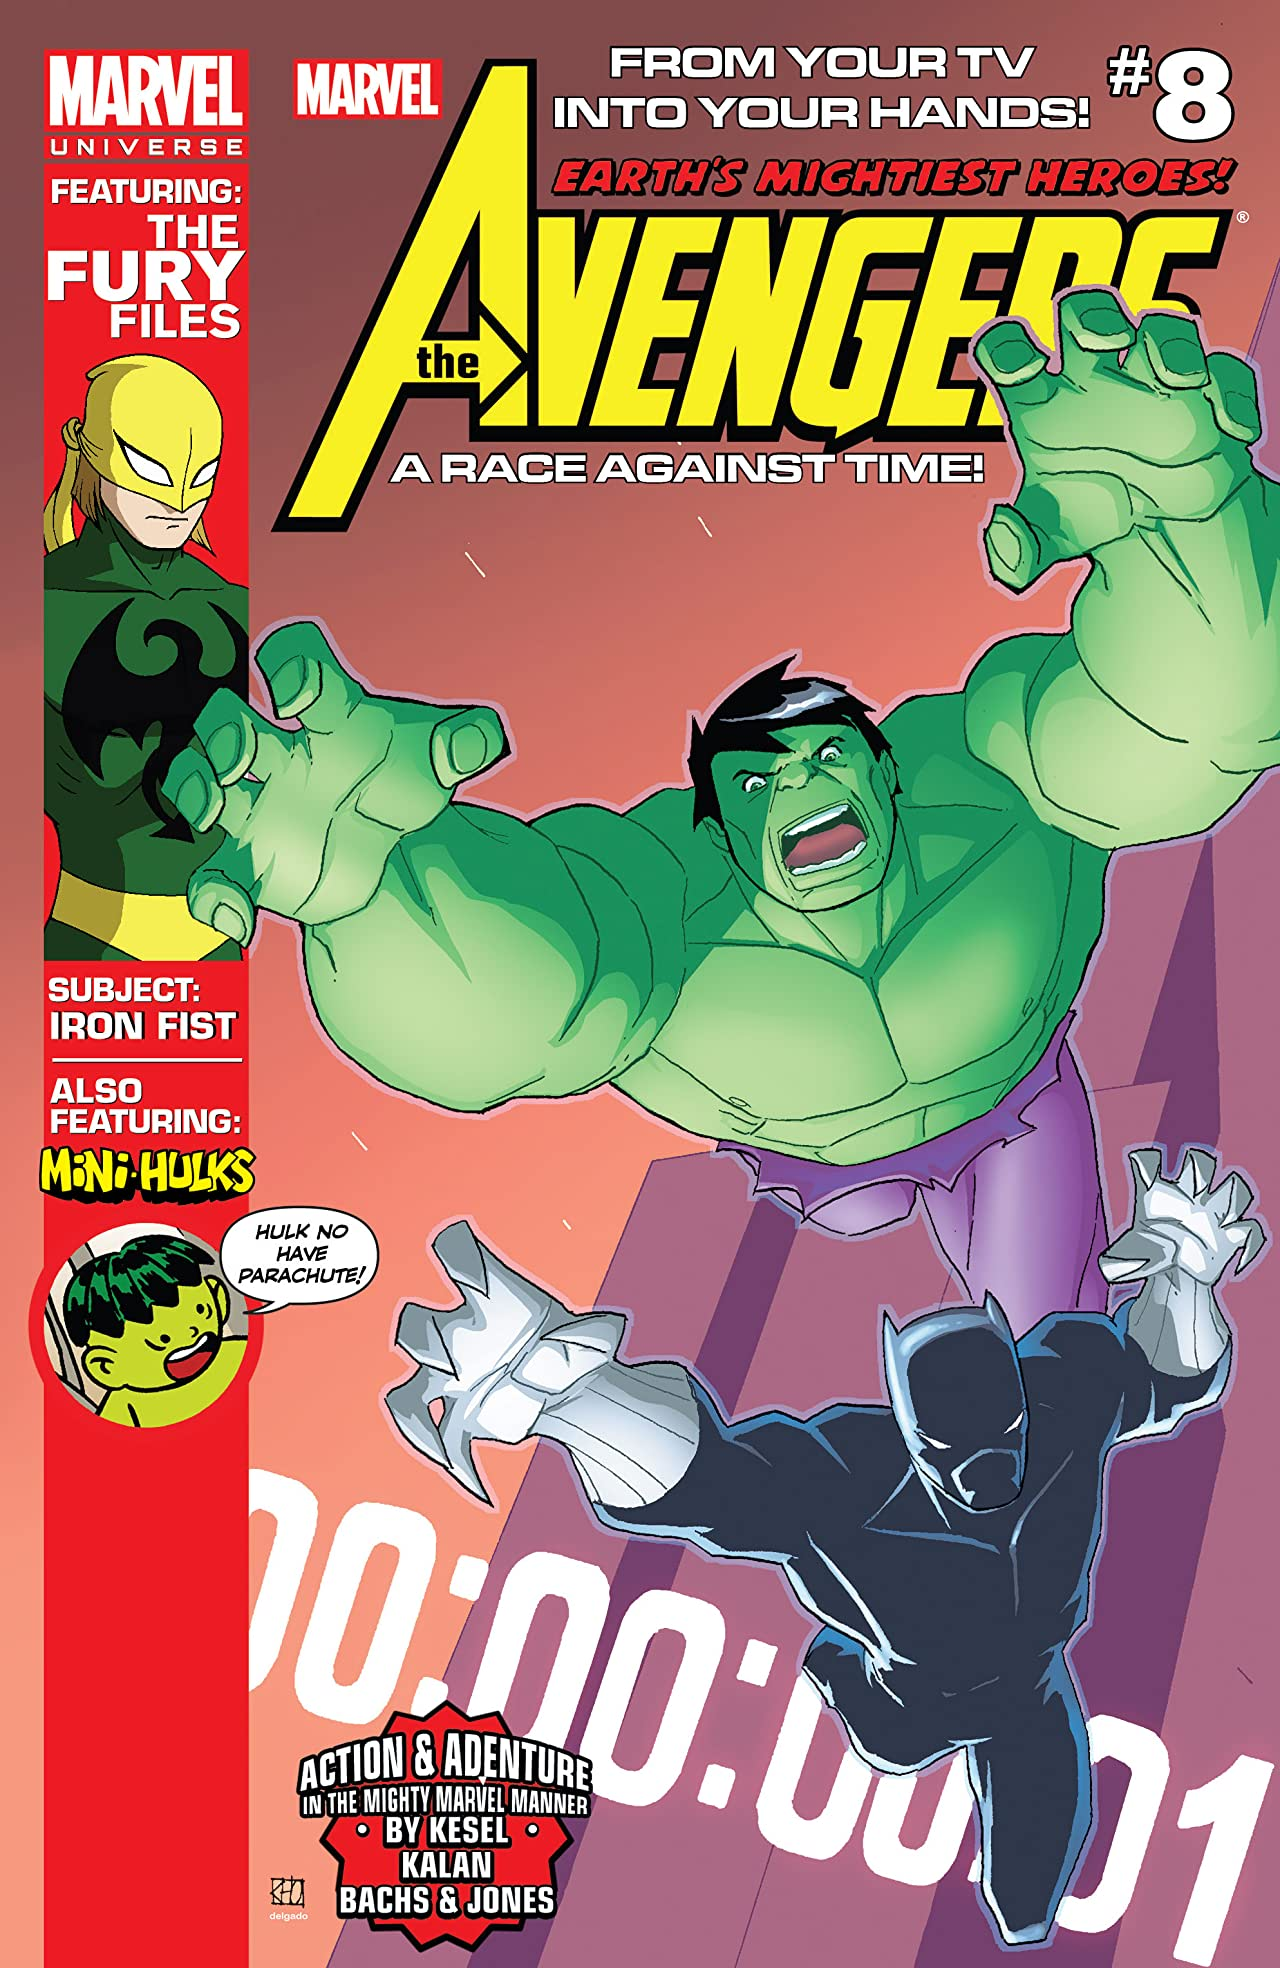 Marvel Universe Avengers: Earth's Mightiest Heroes (2012-2013) #8